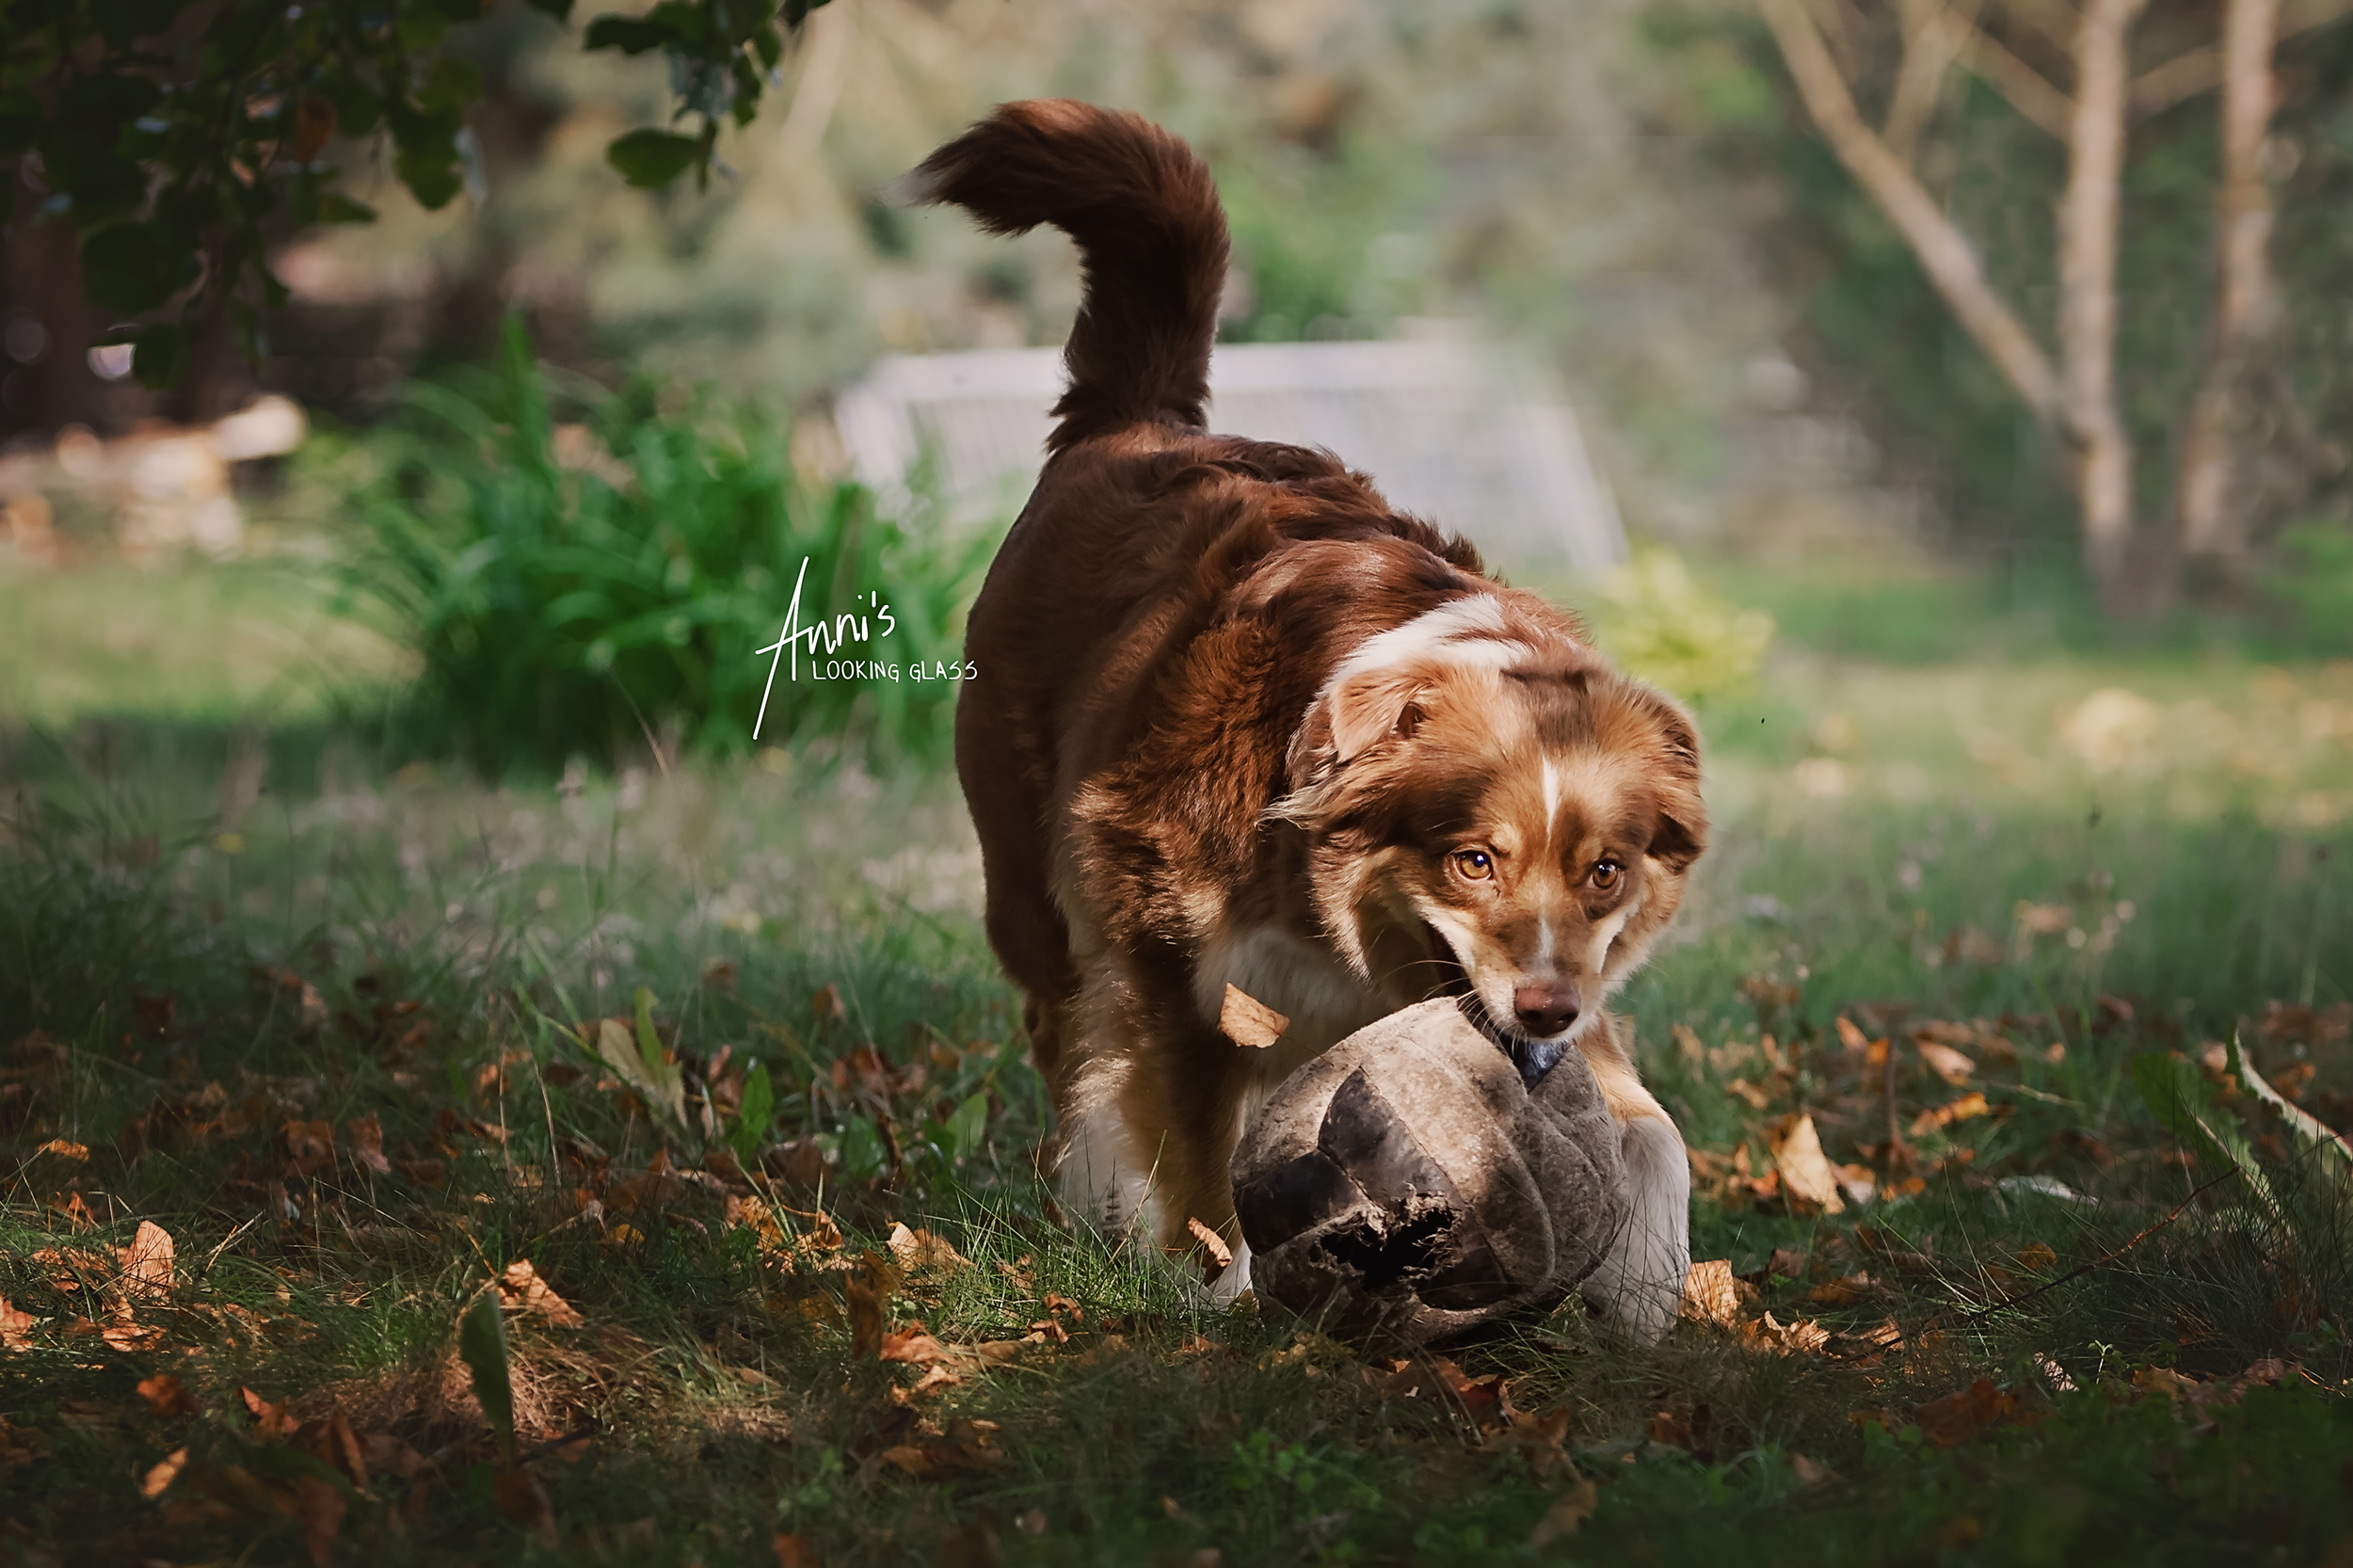 A brown and white dog carries an old football in its mouth